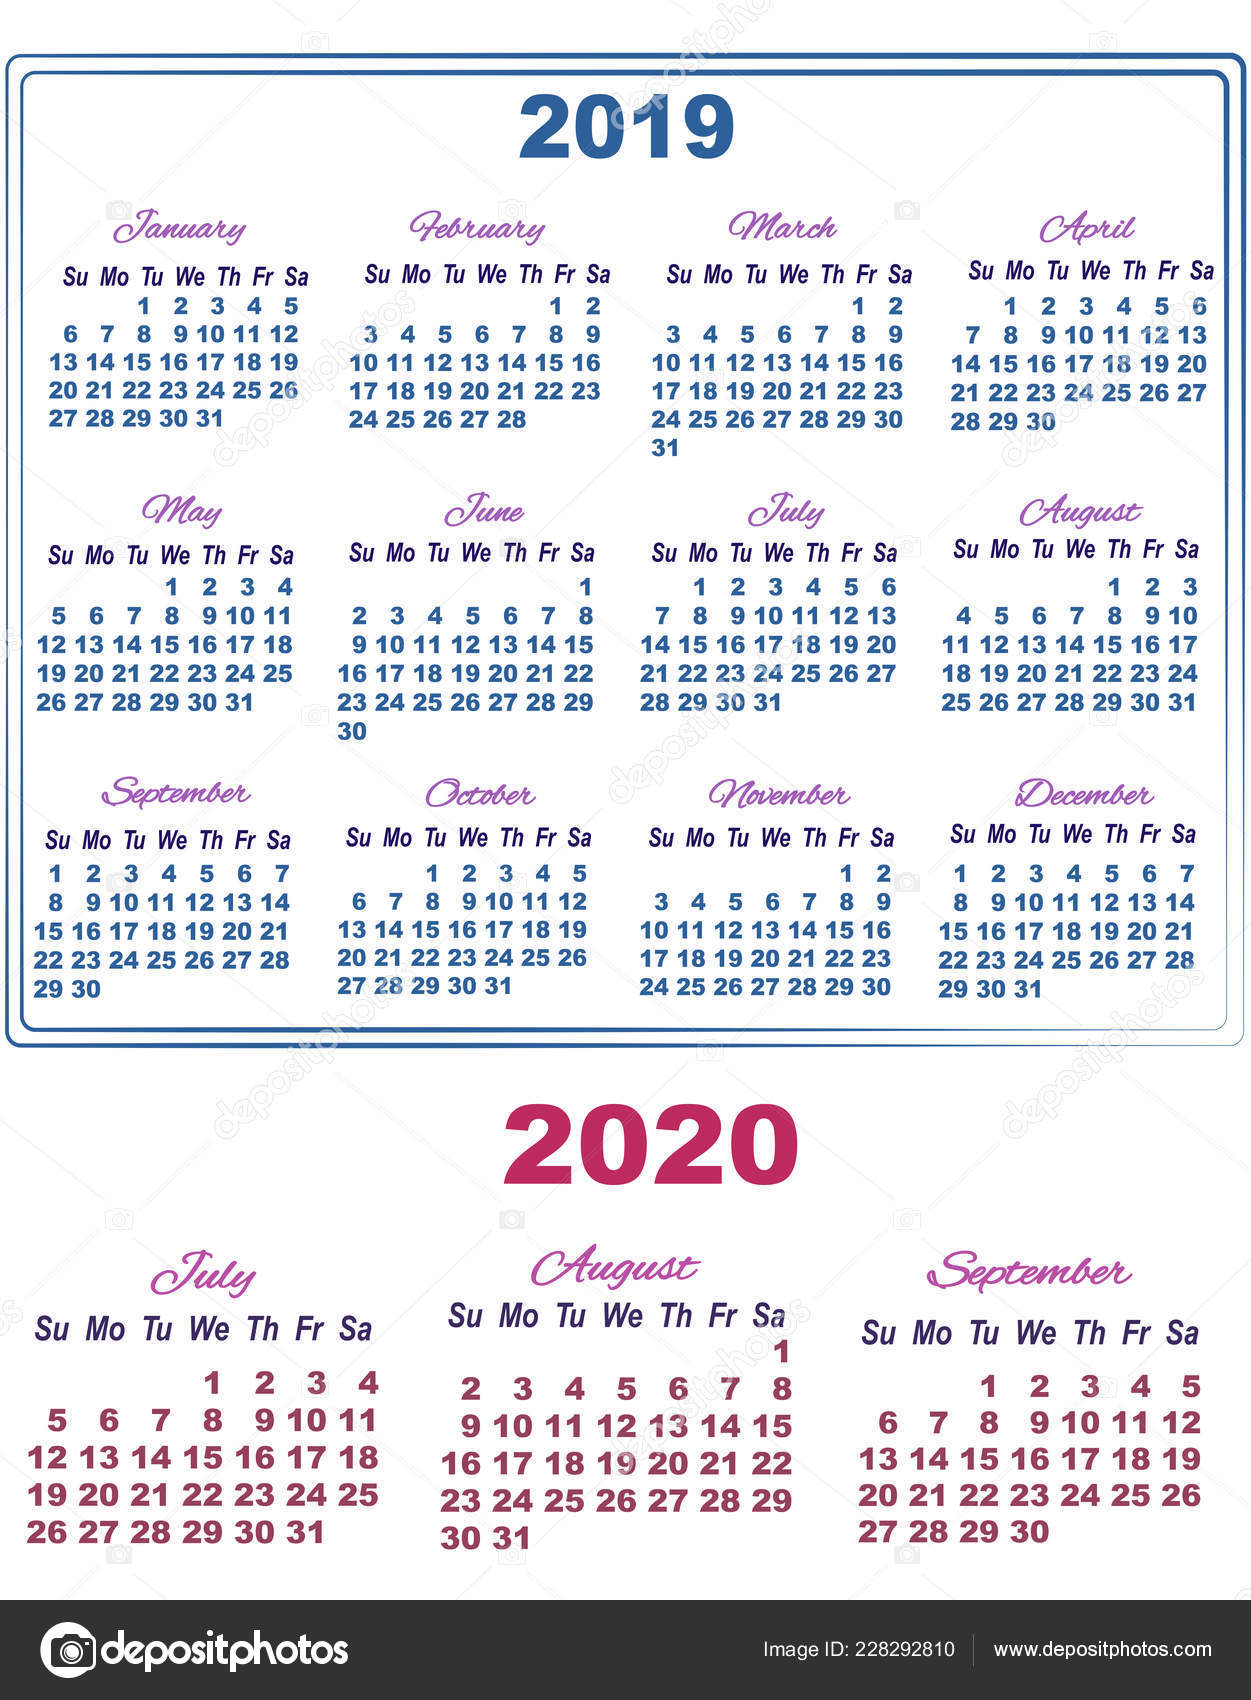 Calendario Agosto 2020.2019 Calendar With July August And September Of 2020